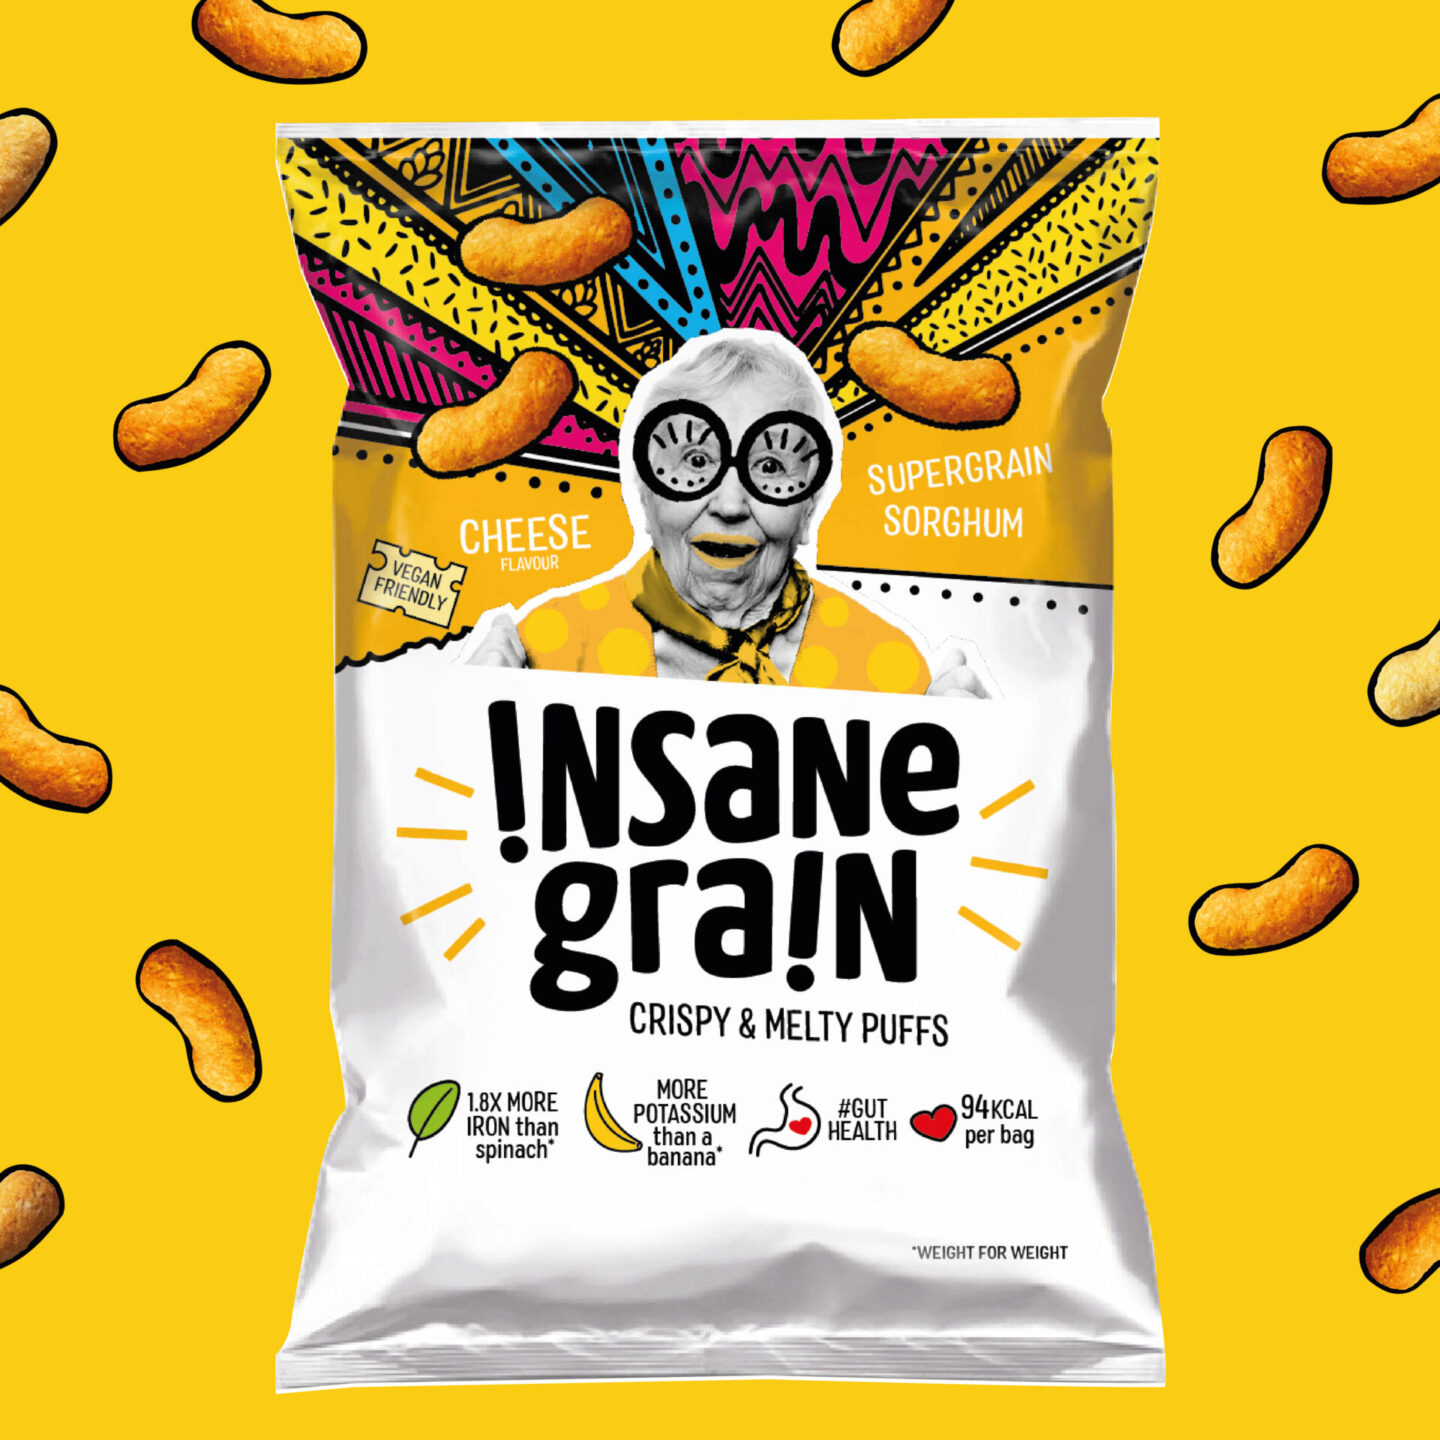 insane grain social media posts by melissa carne